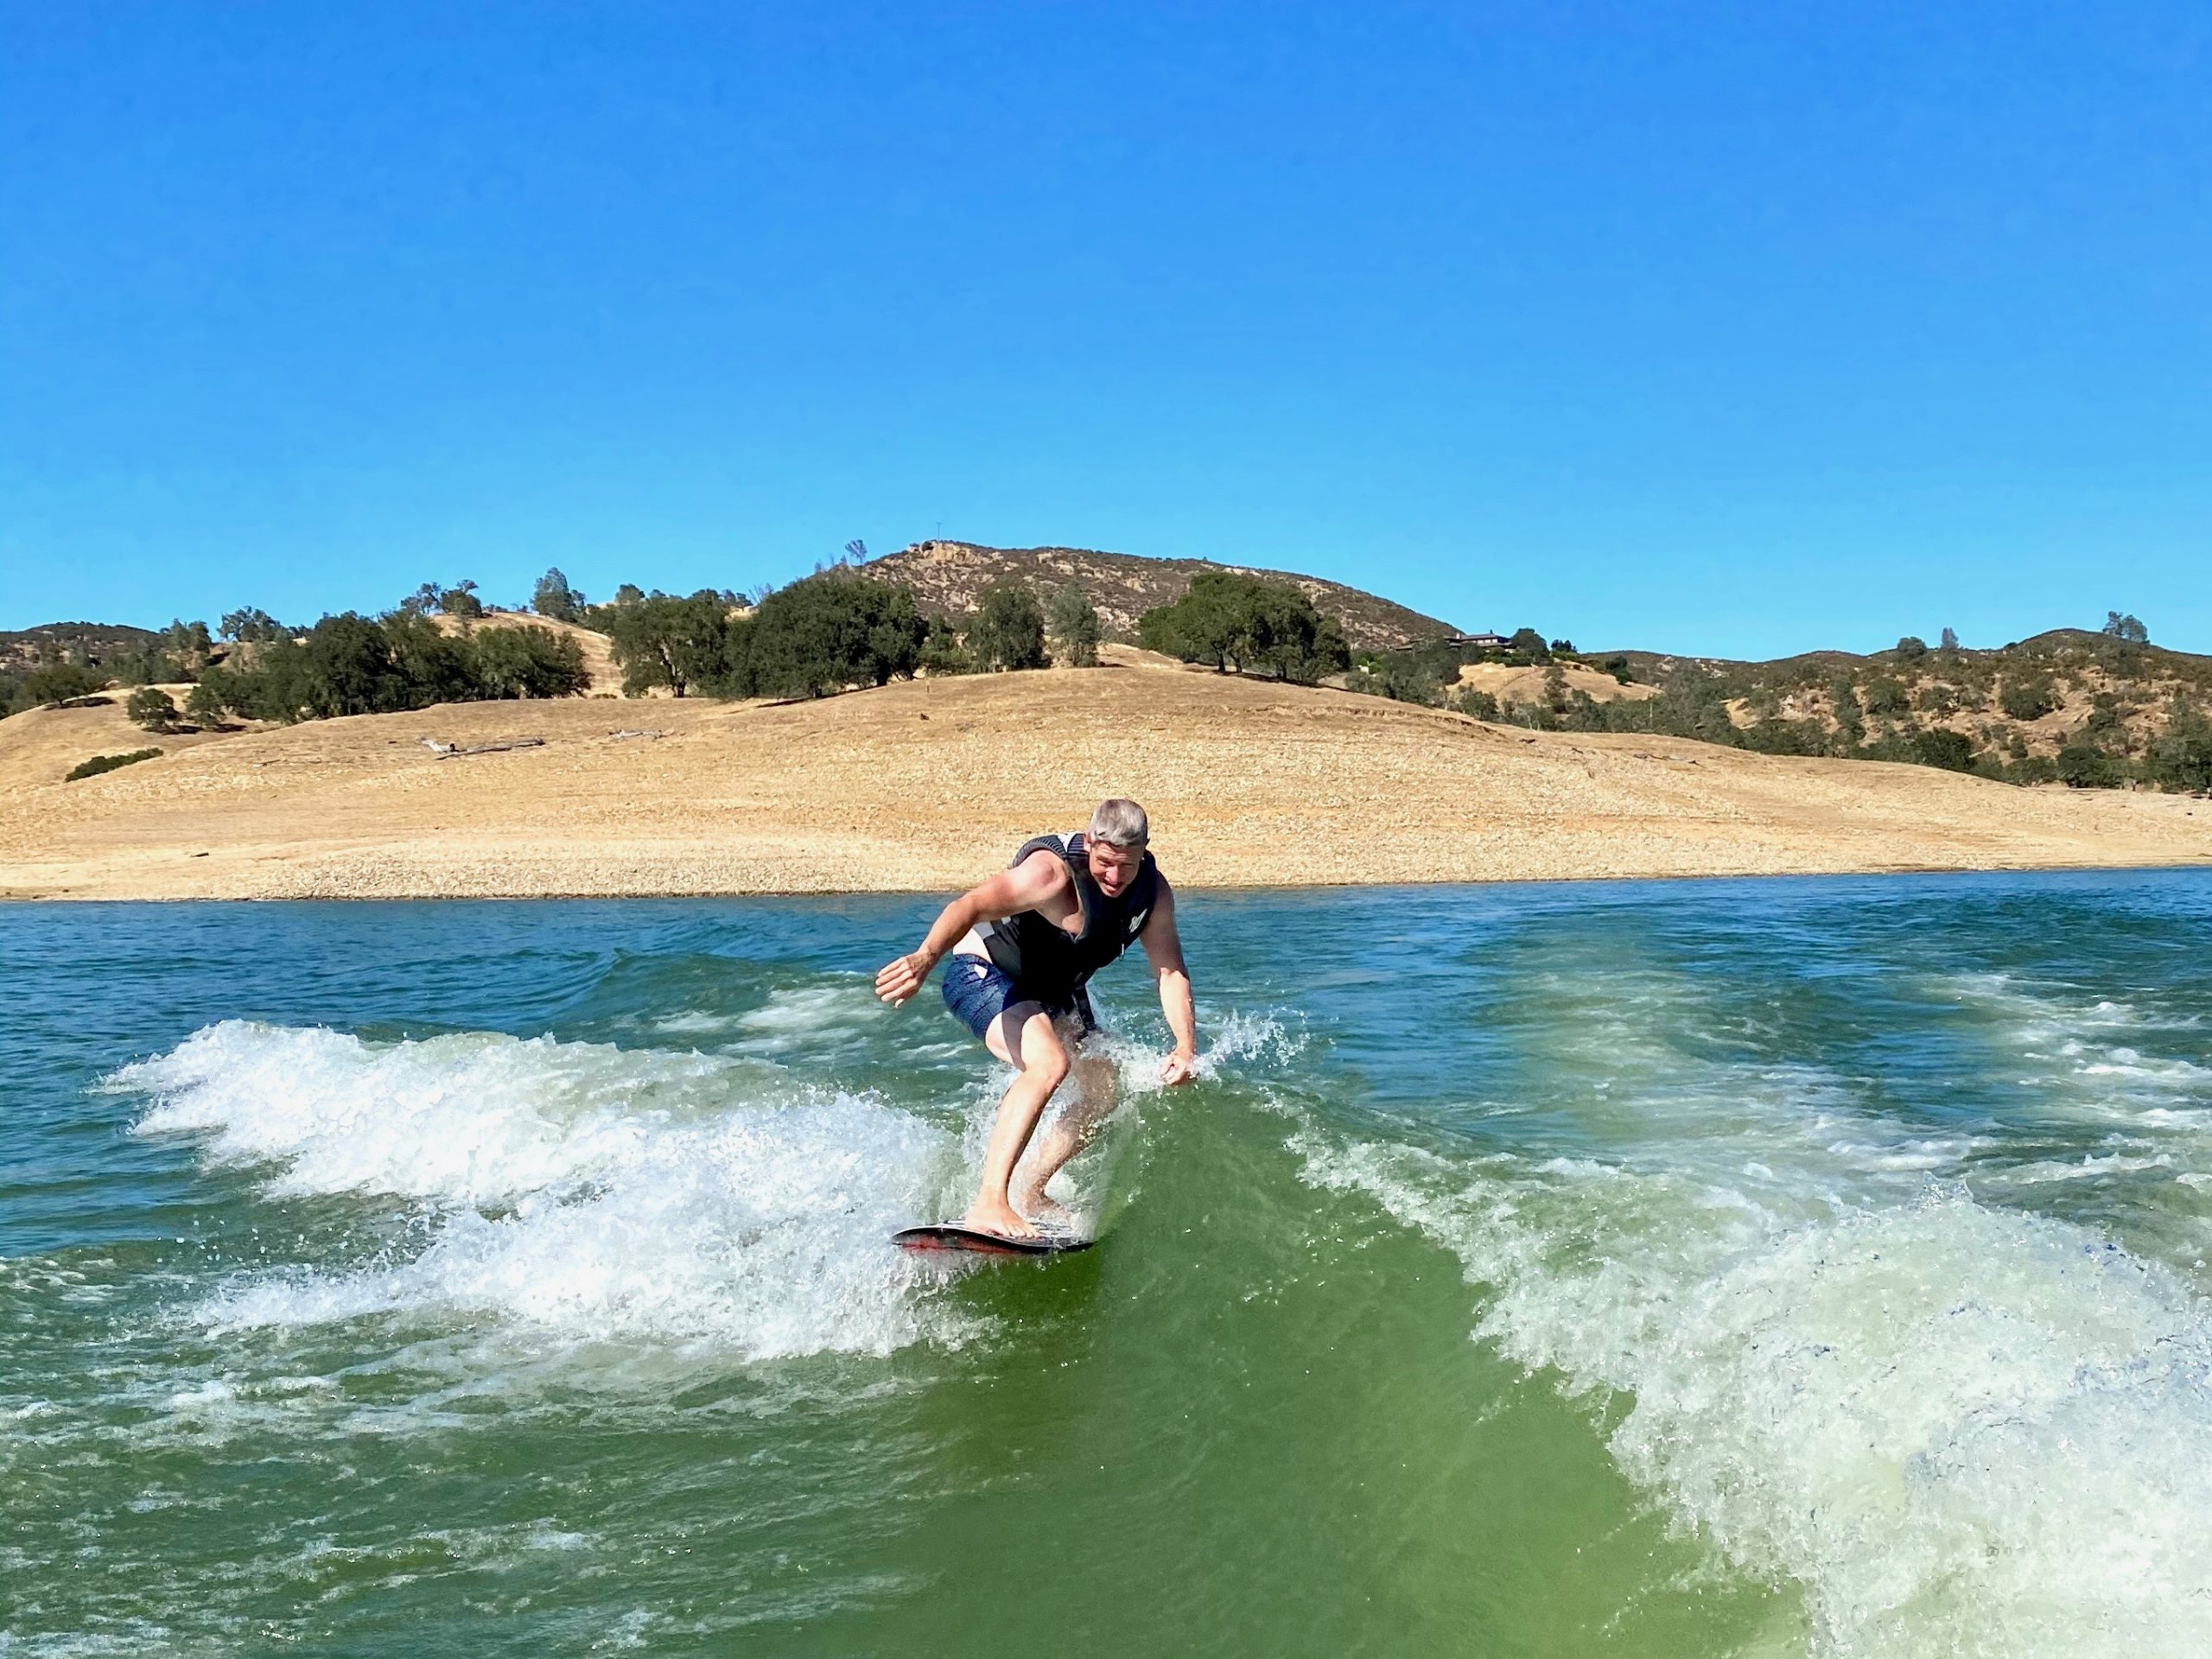 Man wake surfing at Lake Nacimiento, CA